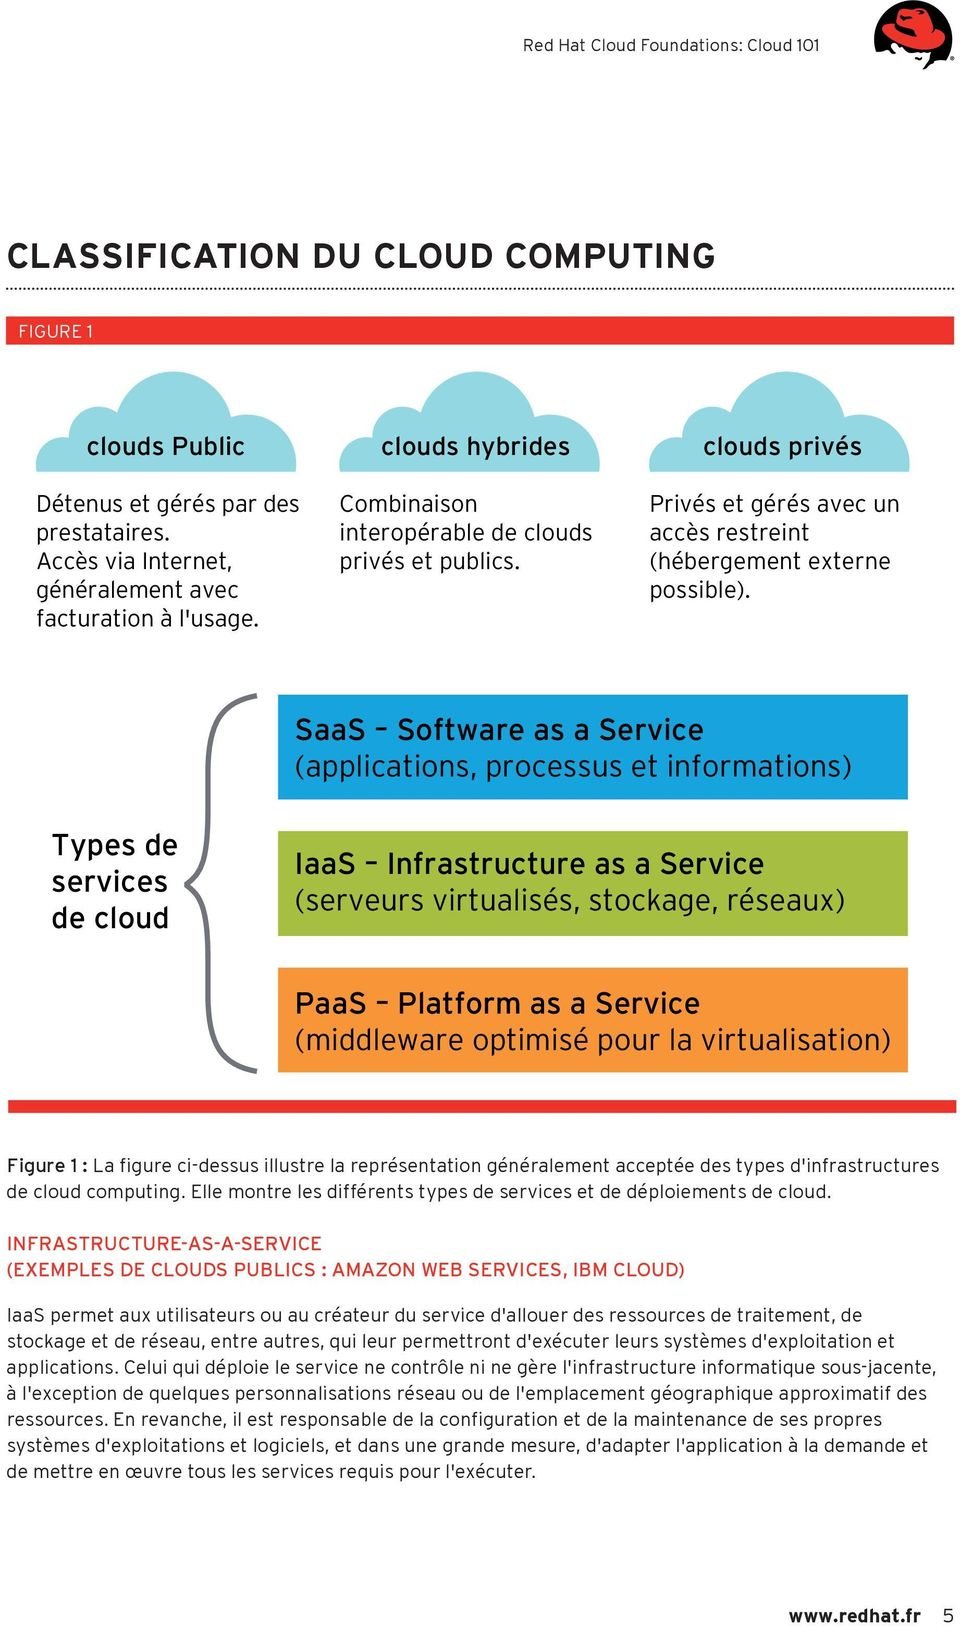 SaaS Software as a Service (applications, processus et informations) Types de services de cloud IaaS Infrastructure as a Service (serveurs virtualisés, stockage, réseaux) PaaS Platform as a Service